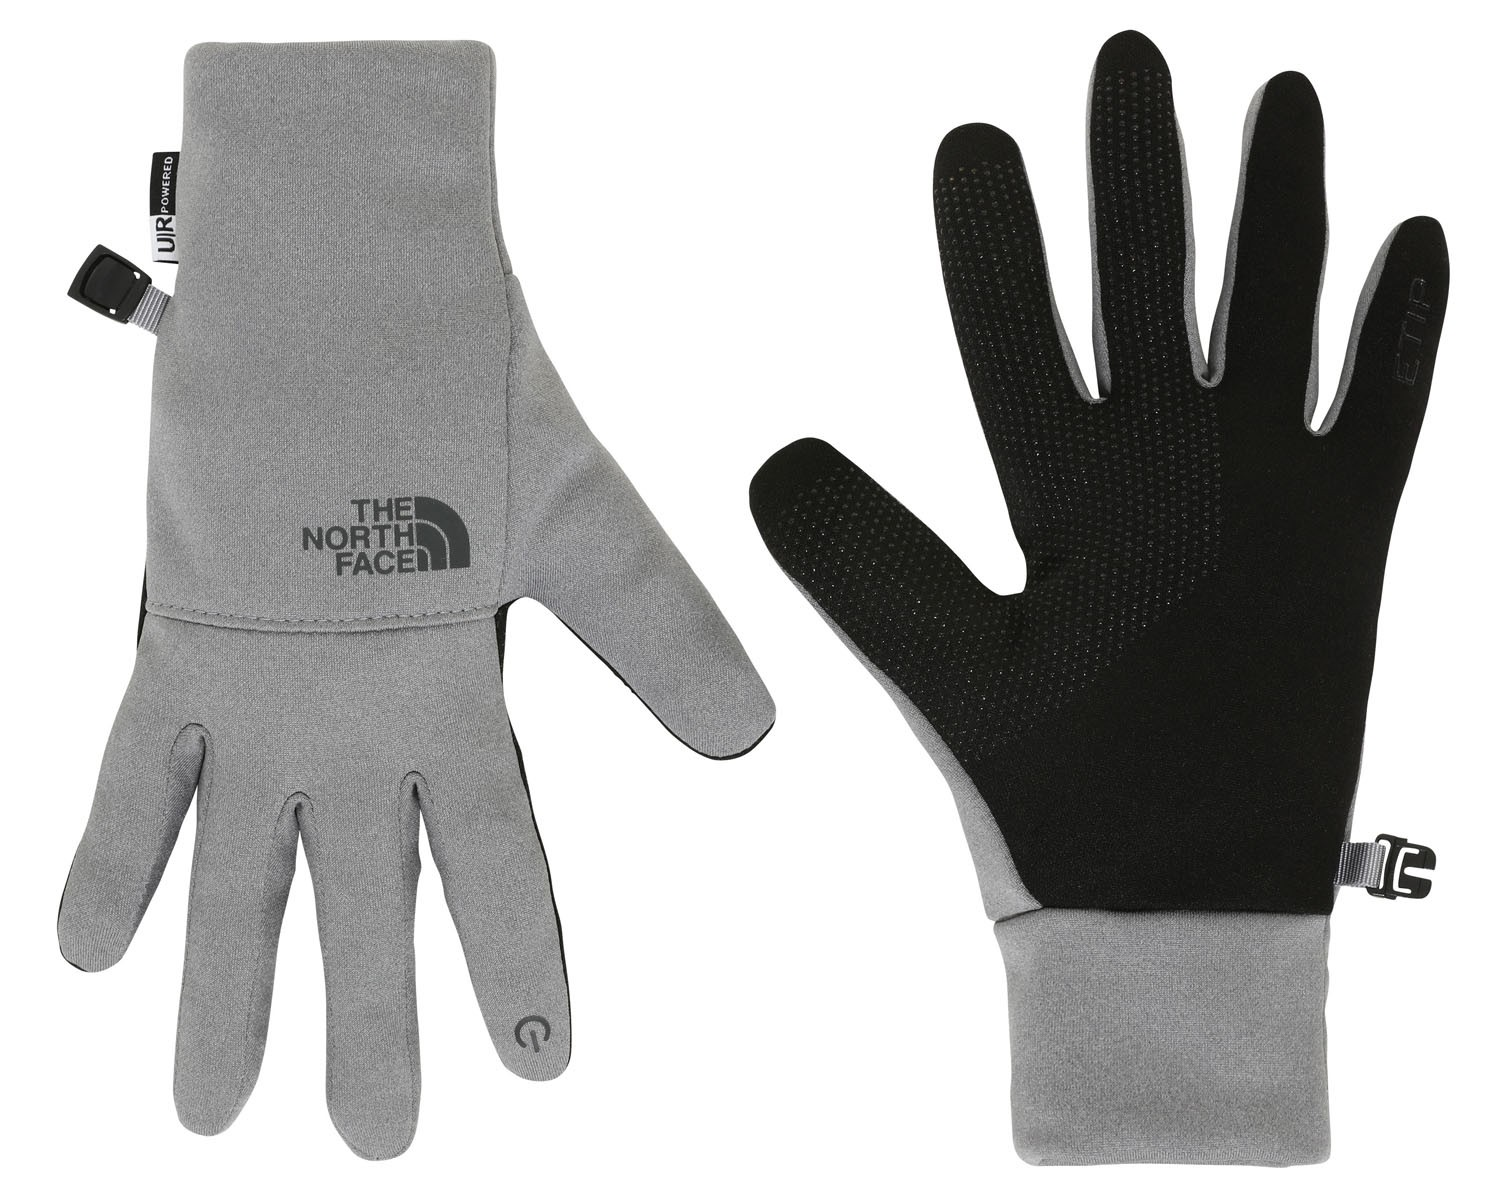 The North Face Etip Recycled Gloves W, guantes polares para mujer